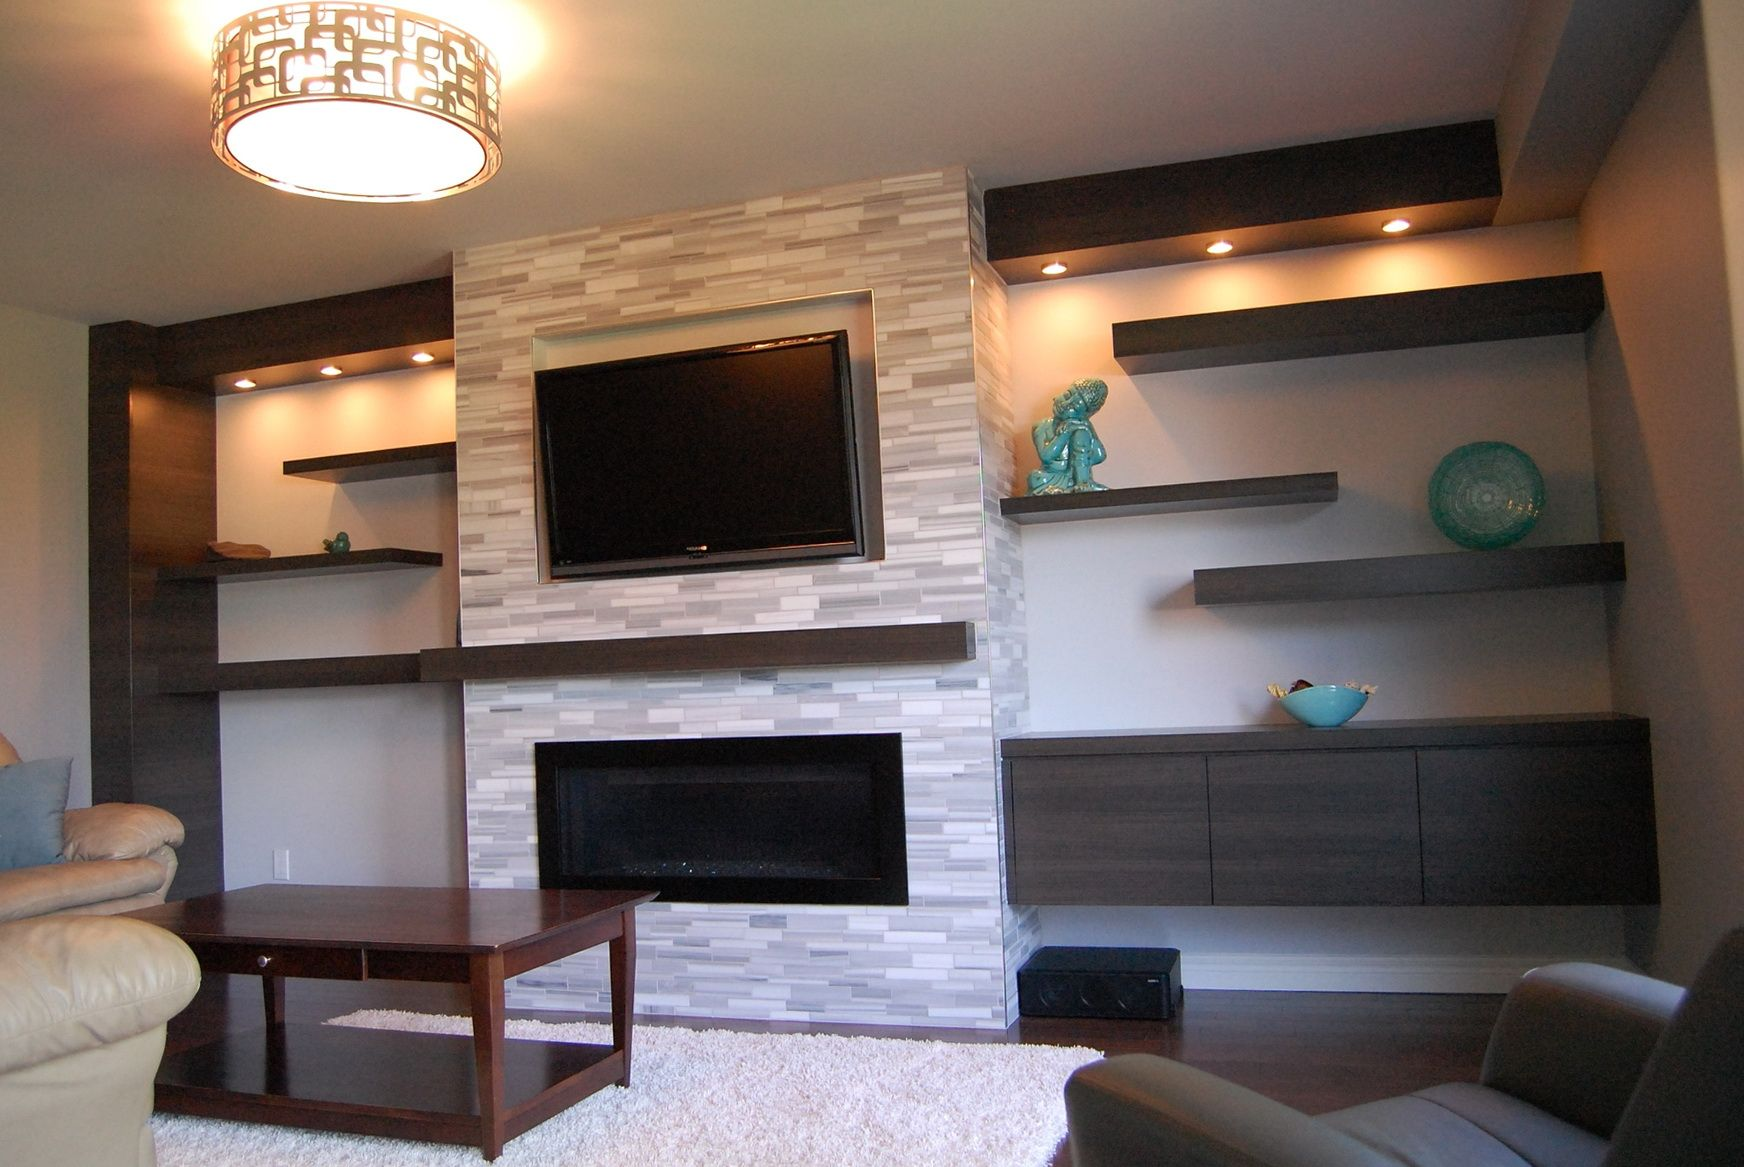 Wall mounted fireplace and floating cabinet and shelves Fireplace setting ideas